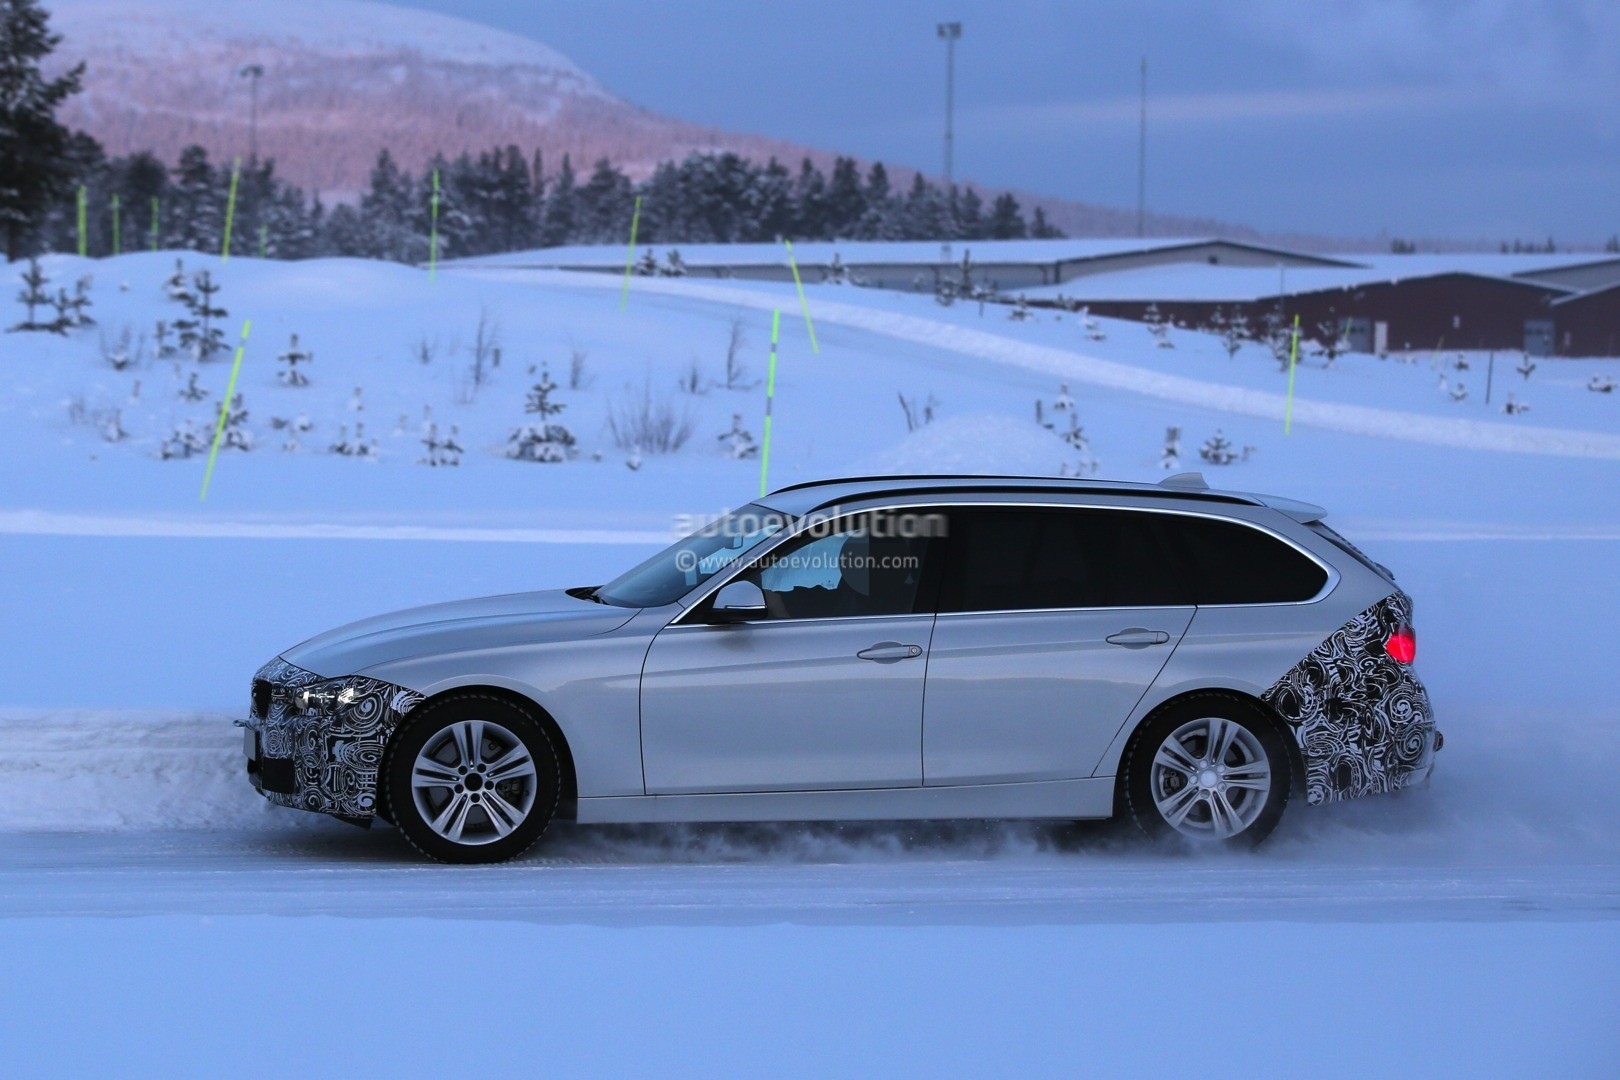 2016 Bmw F31 3 Series Touring Facelift Spied Testing In